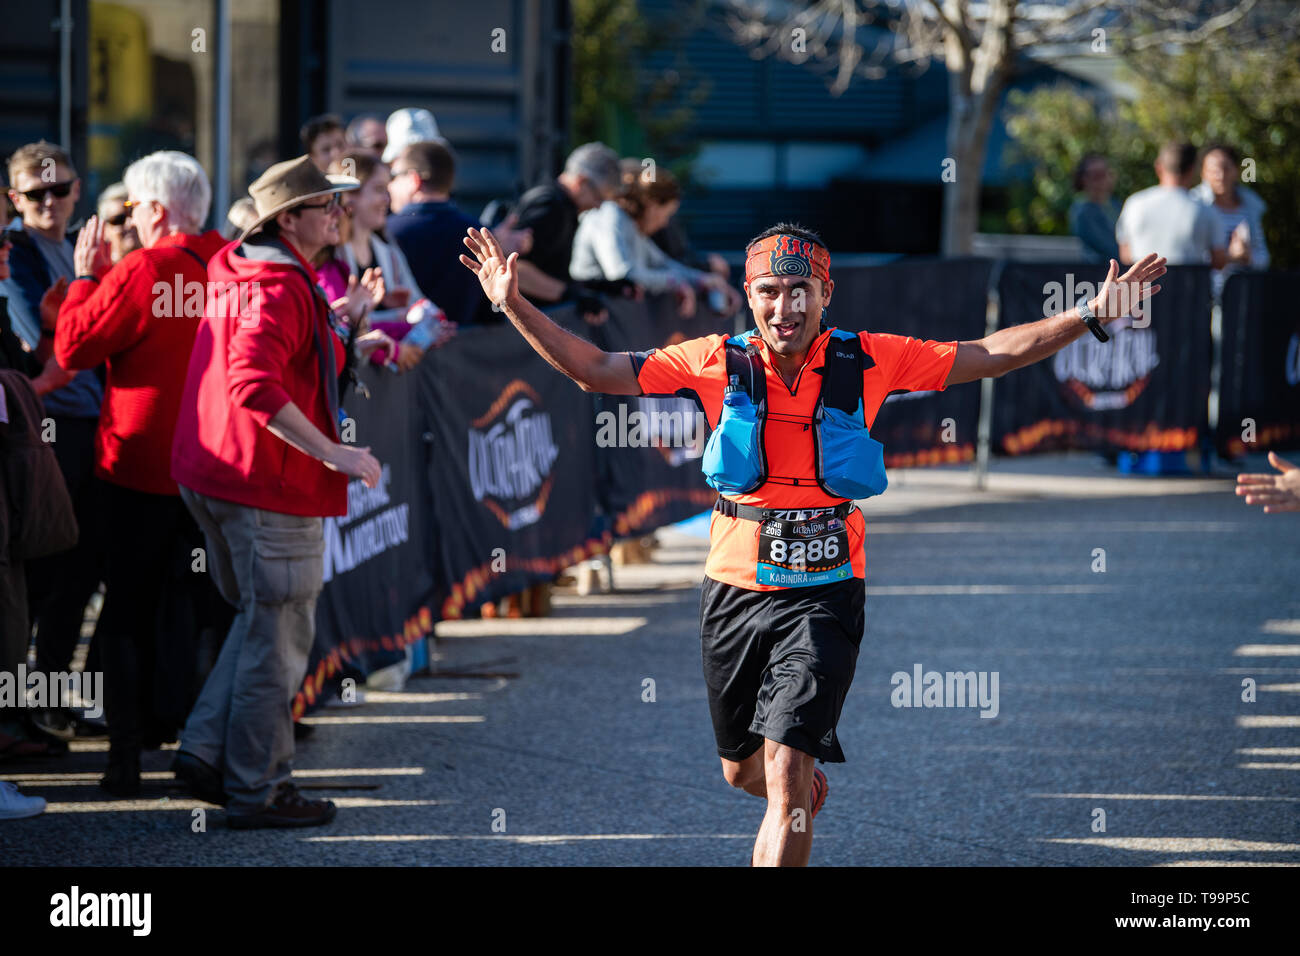 Blue Mountains, Australia - April 16 2019: Ultra-Trail Australia UTA11 race. Runner about to finish on home stretch raises hands in victory - Stock Image